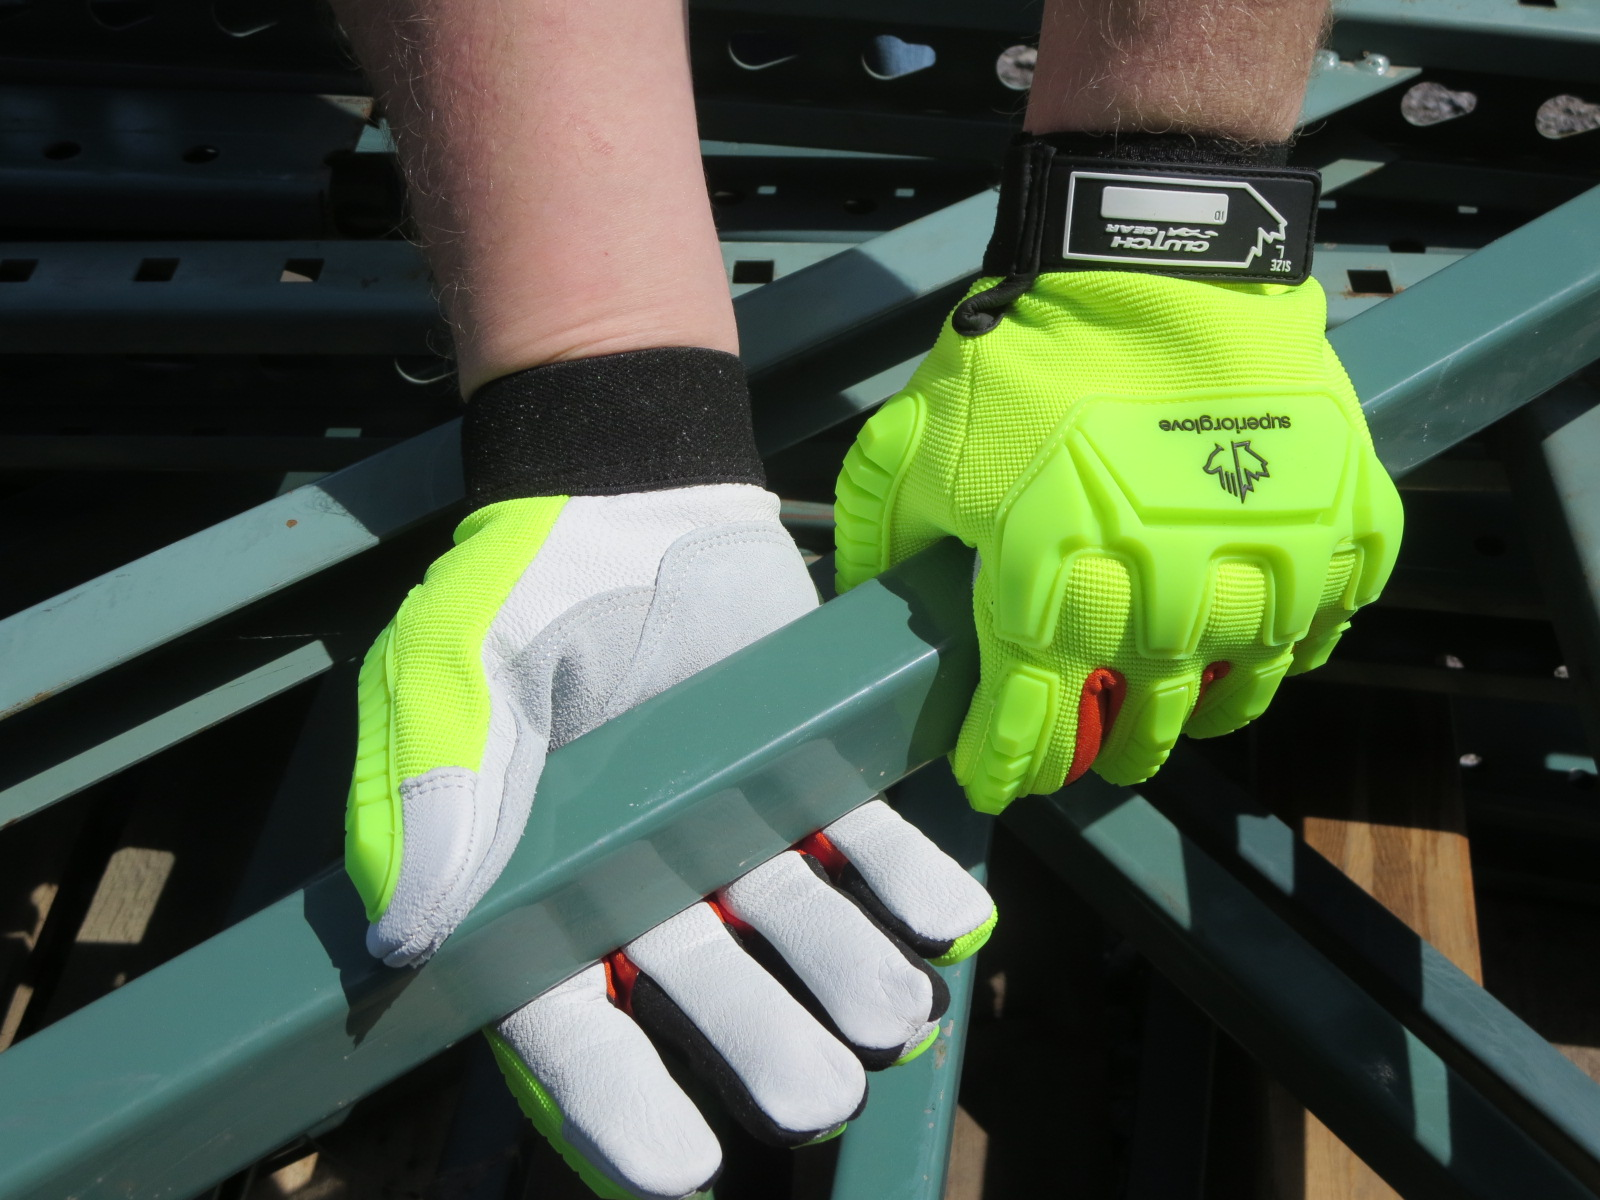 #MXGCEHVB Superior Glove® Clutch Gear® Hi-Viz Anti-Impact Goat-Grain Mechanics Glove